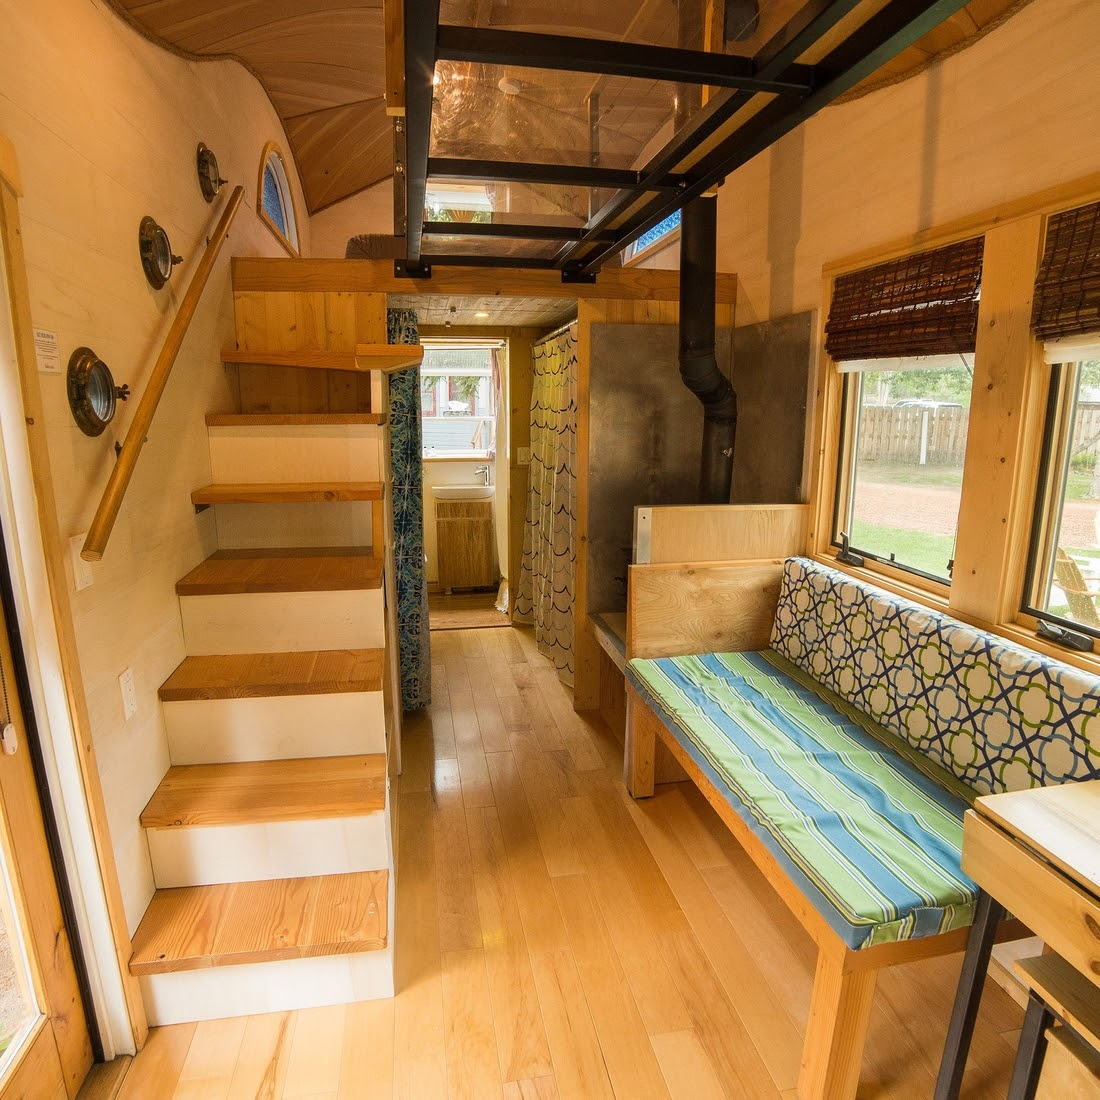 10-Stairs-to-Master-Bedroom-and-Guest-Bedroom-WeeCasa-The-Pequod-Tiny-House-Architecture-www-designstack-co